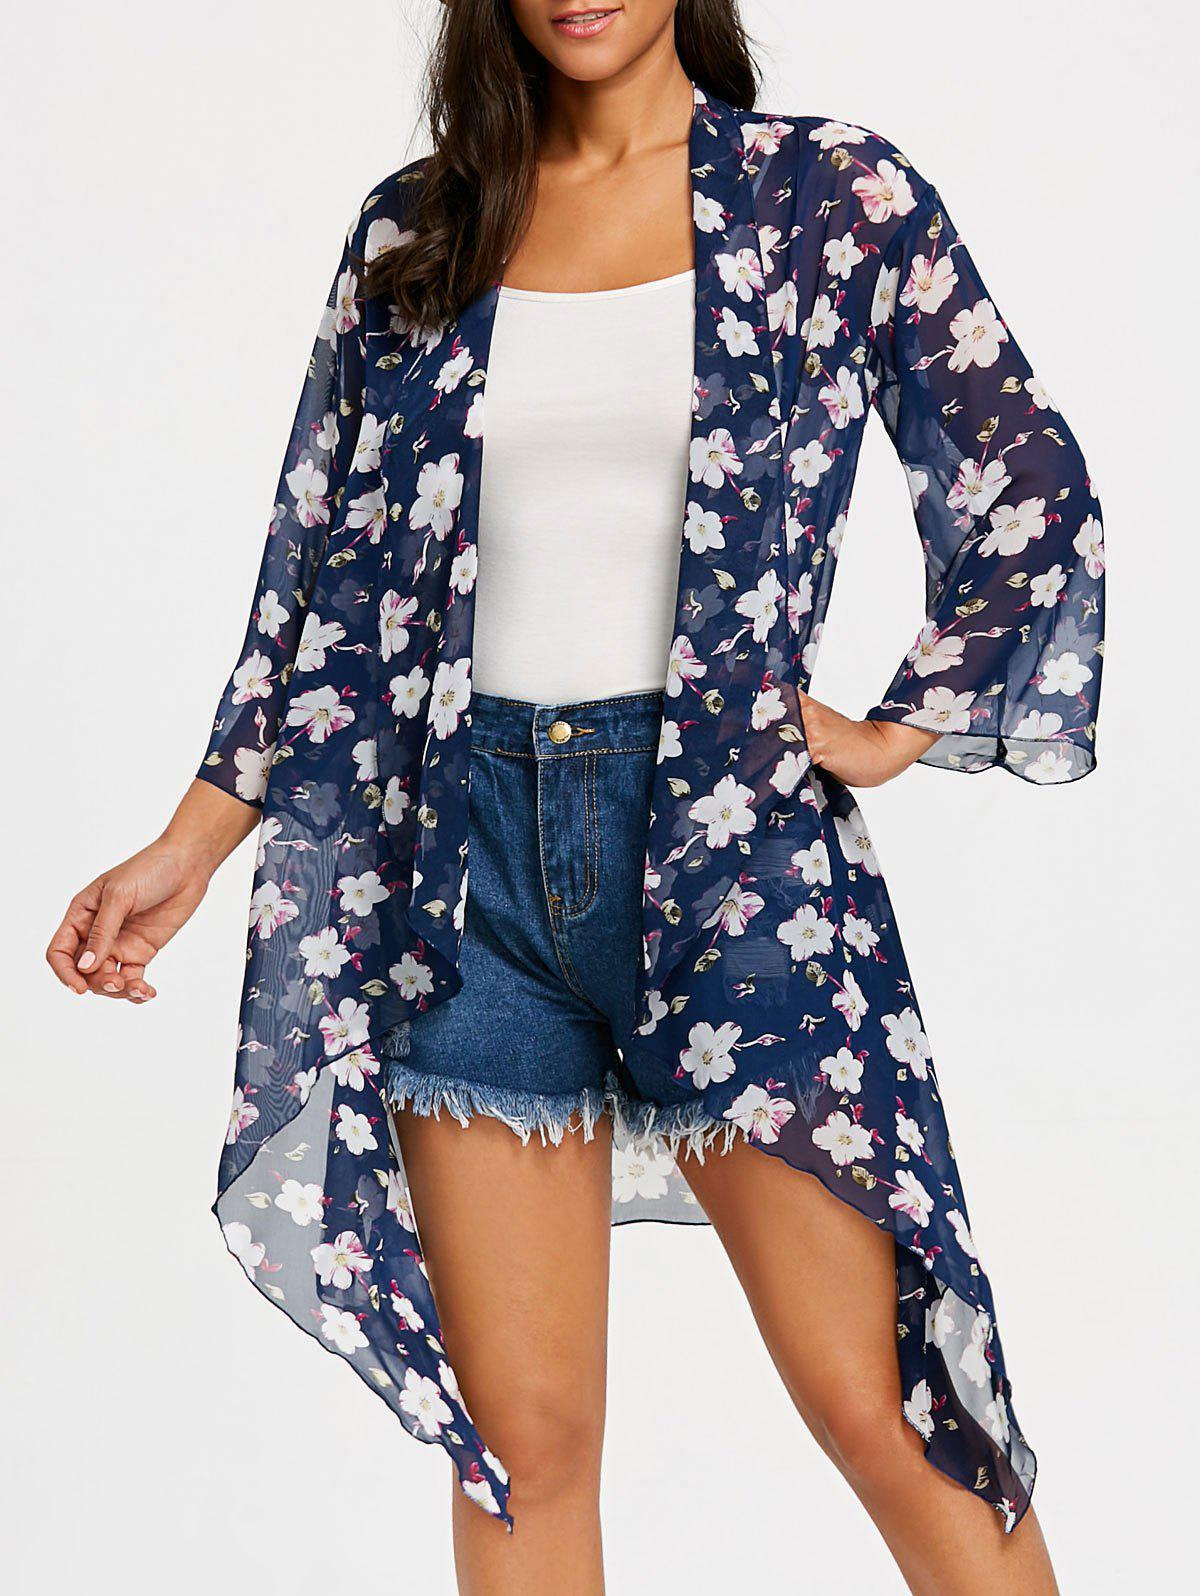 Floral See Through Chiffon Cover Up Kimono - BLUE S